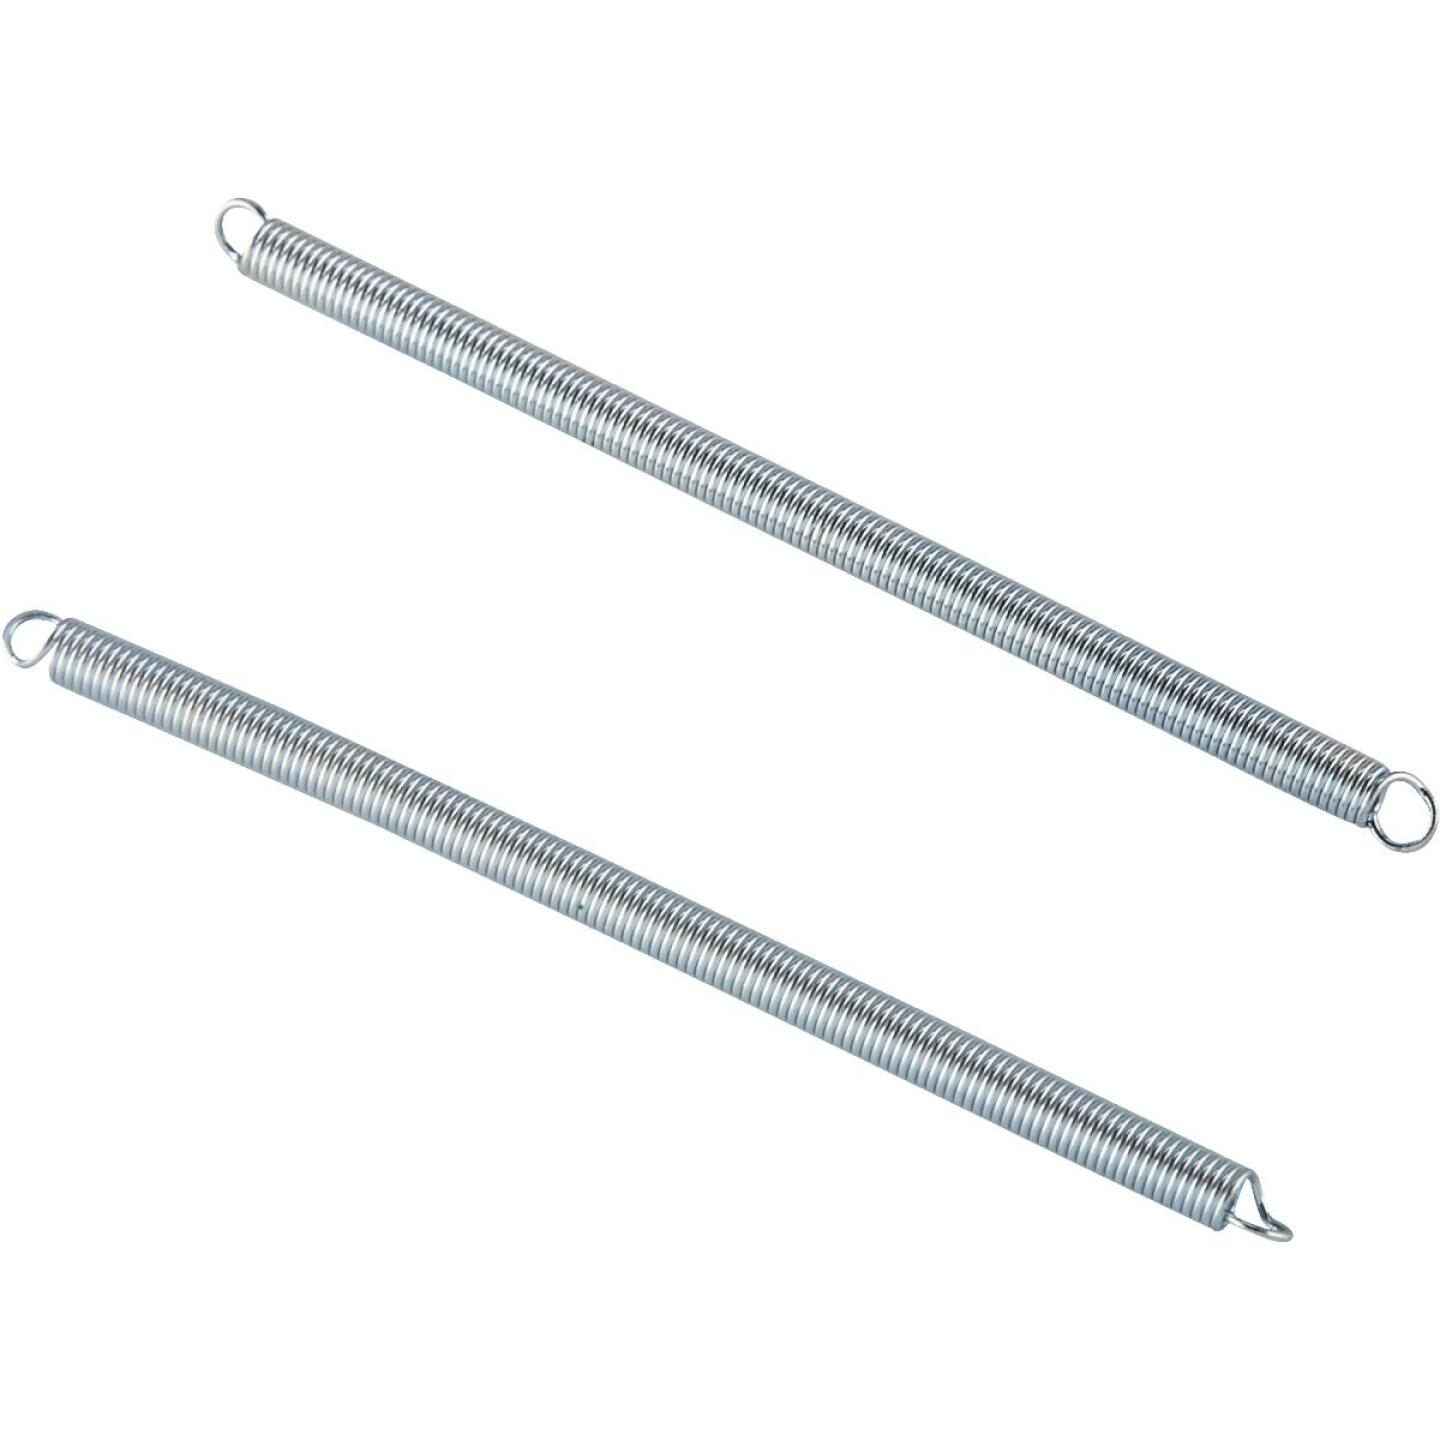 Century Spring 12 In. x 1-1/16 In. Extension Spring (1 Count) Image 1